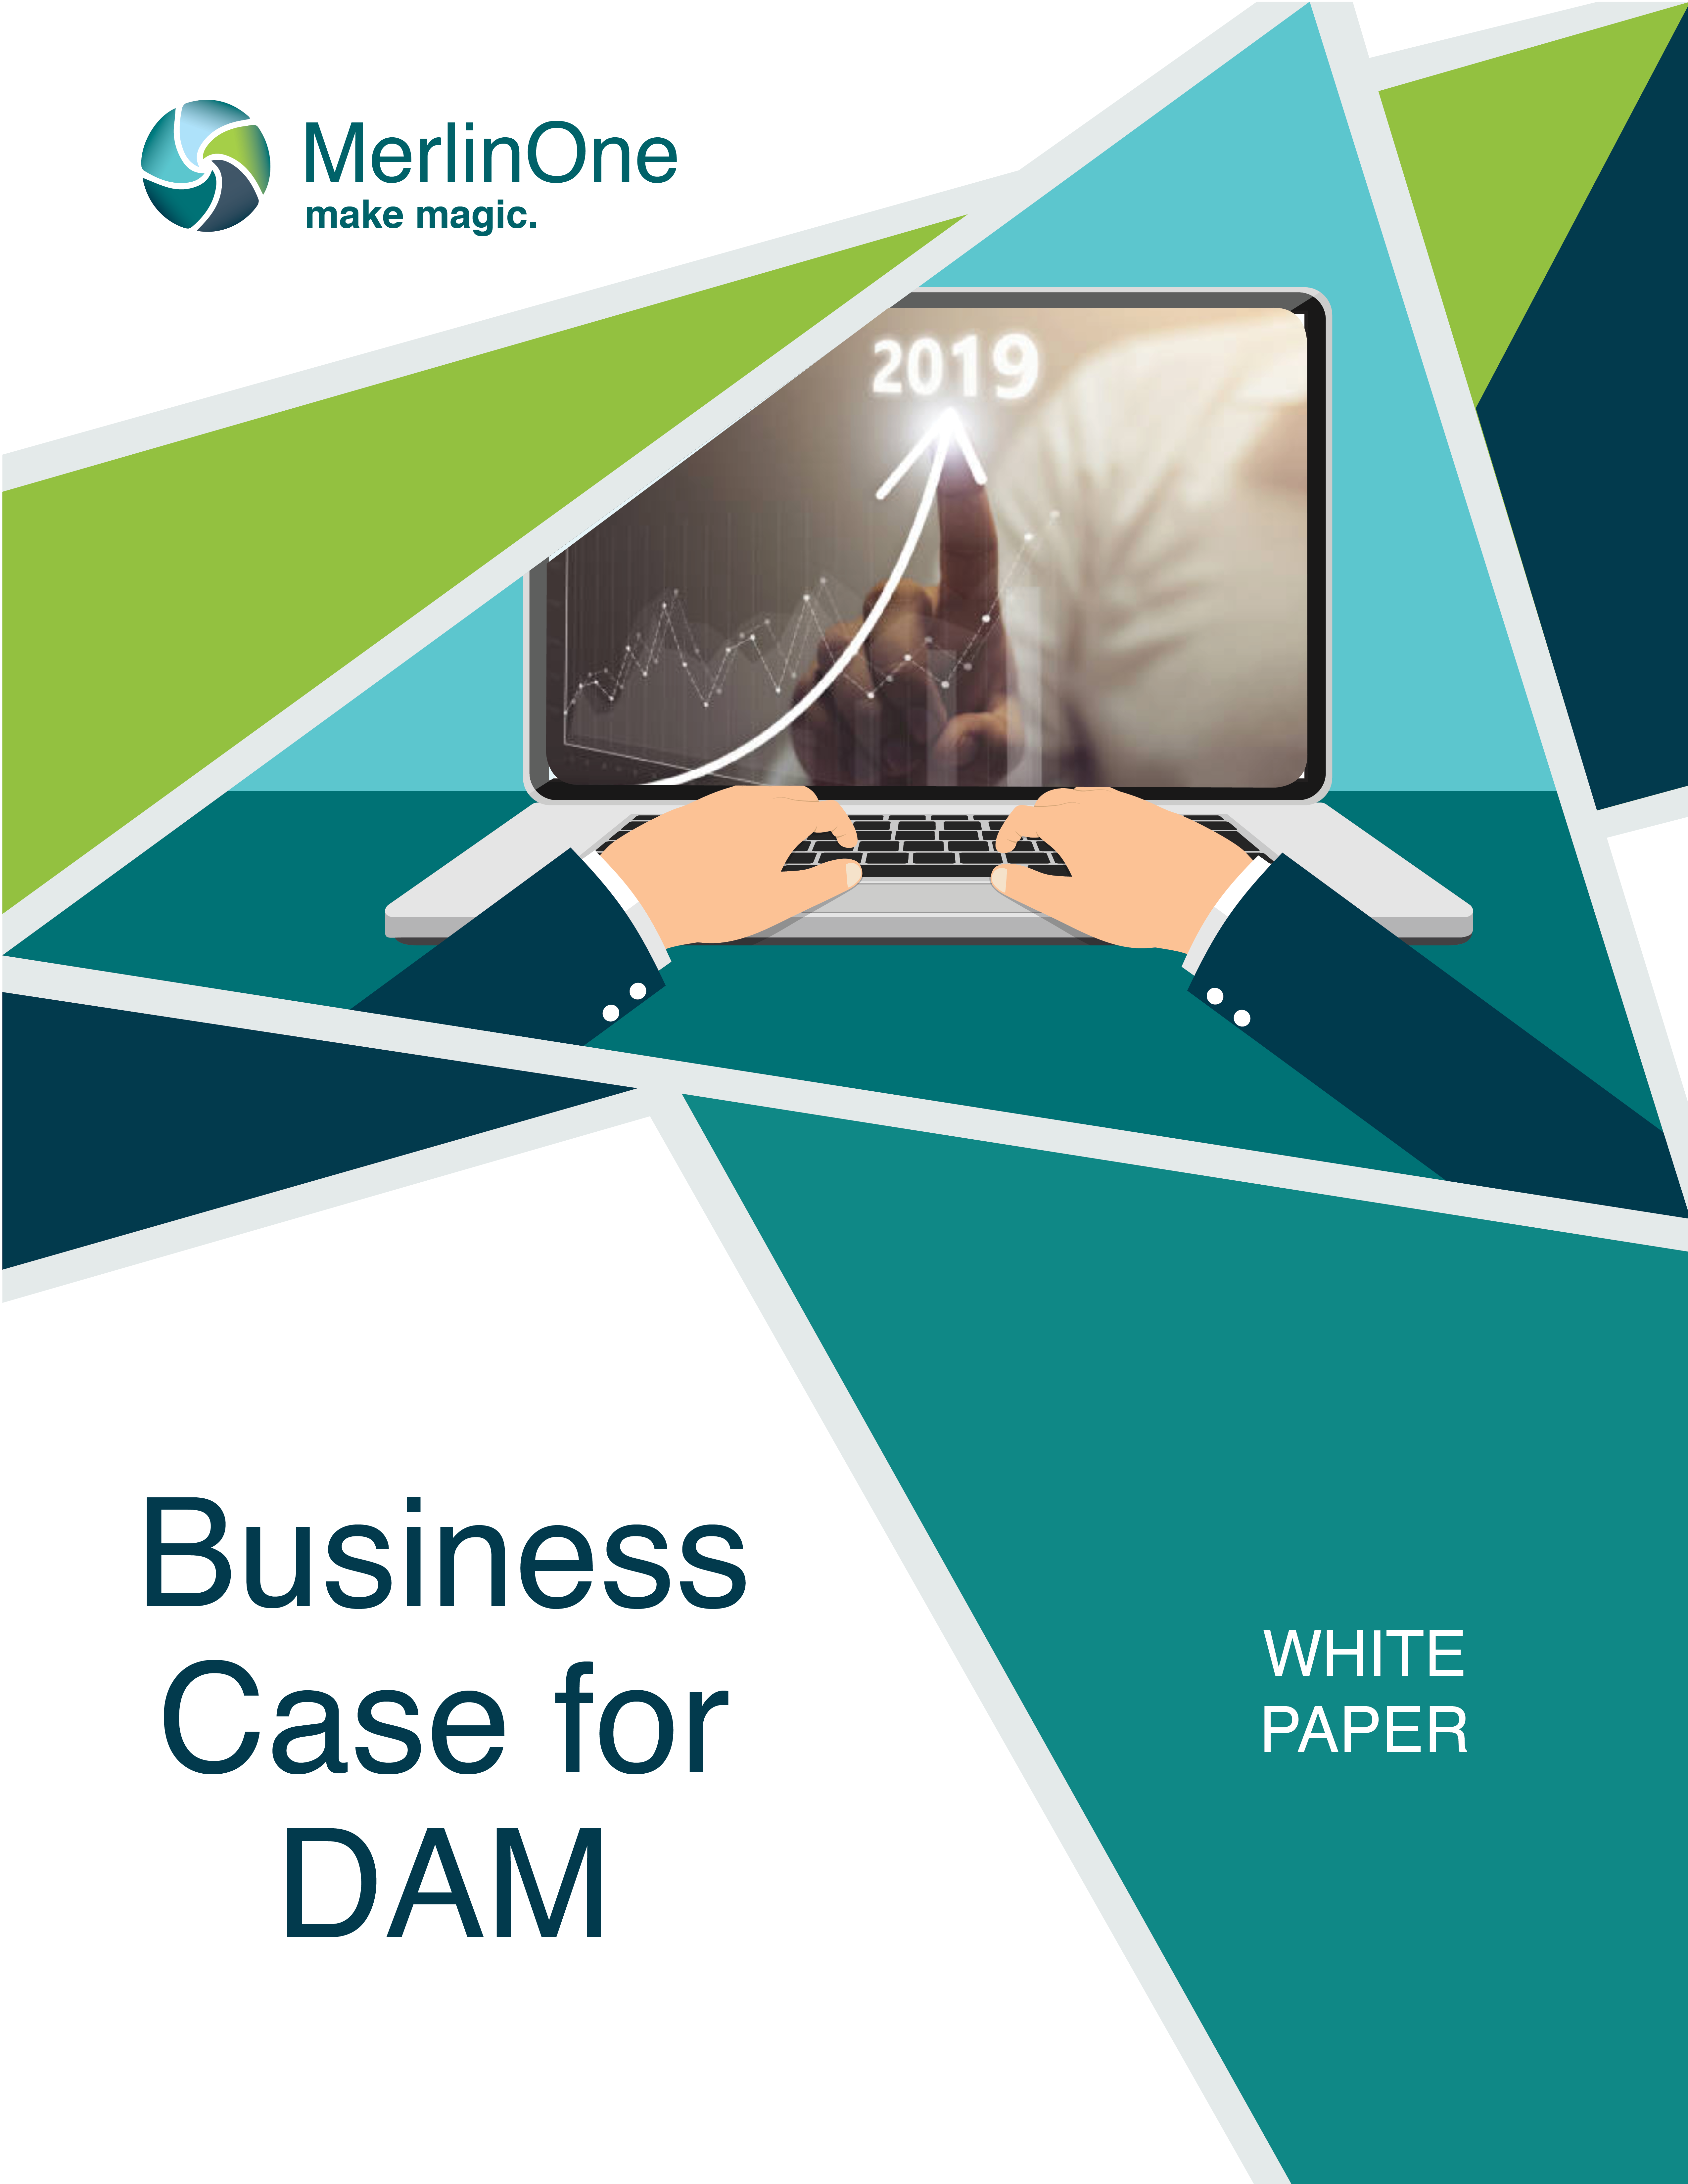 merlin one CTA business case for DAM_png